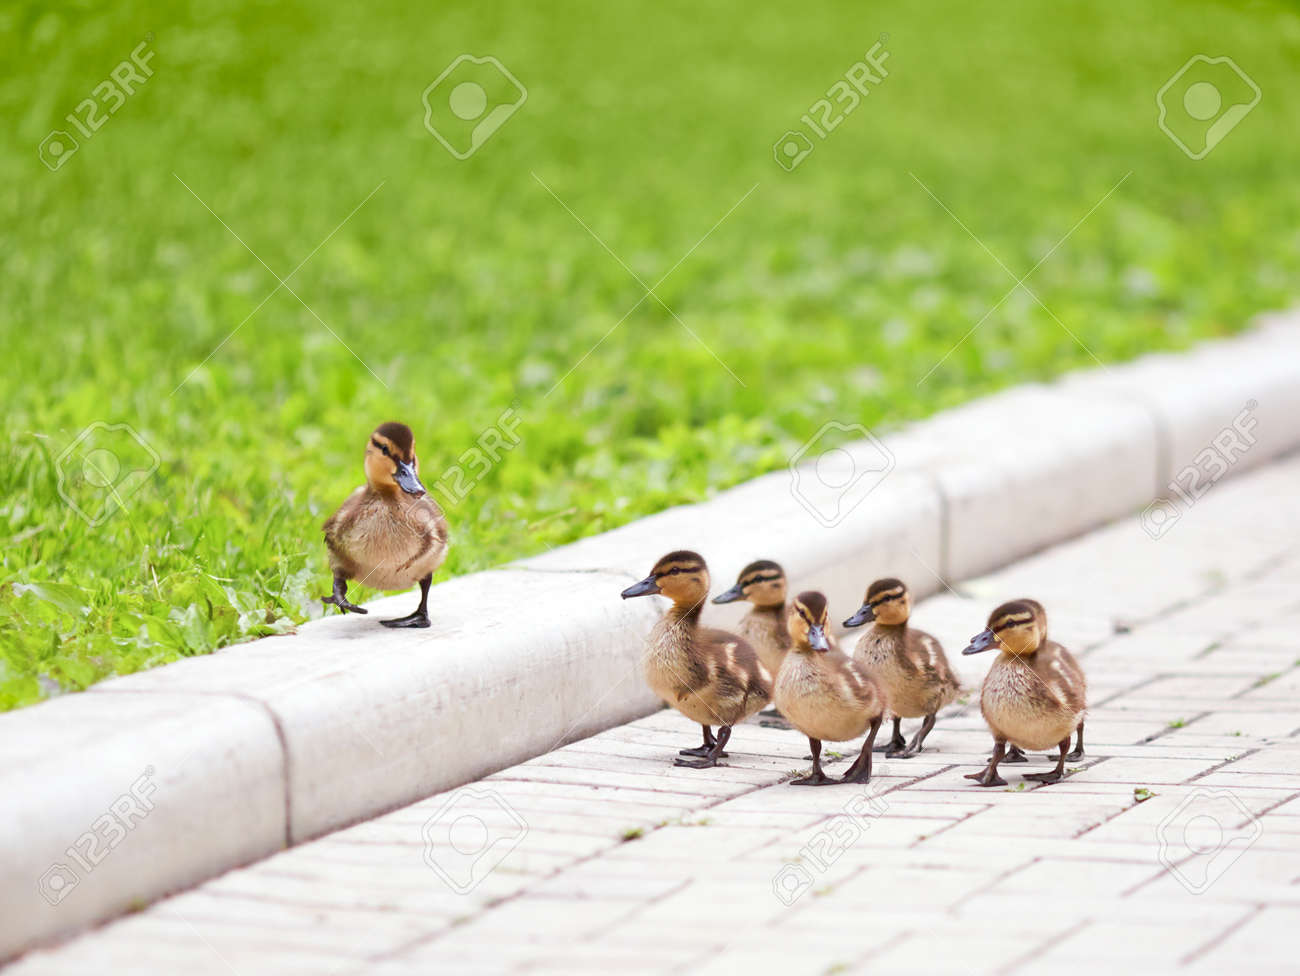 grey duck images u0026 stock pictures royalty free grey duck photos